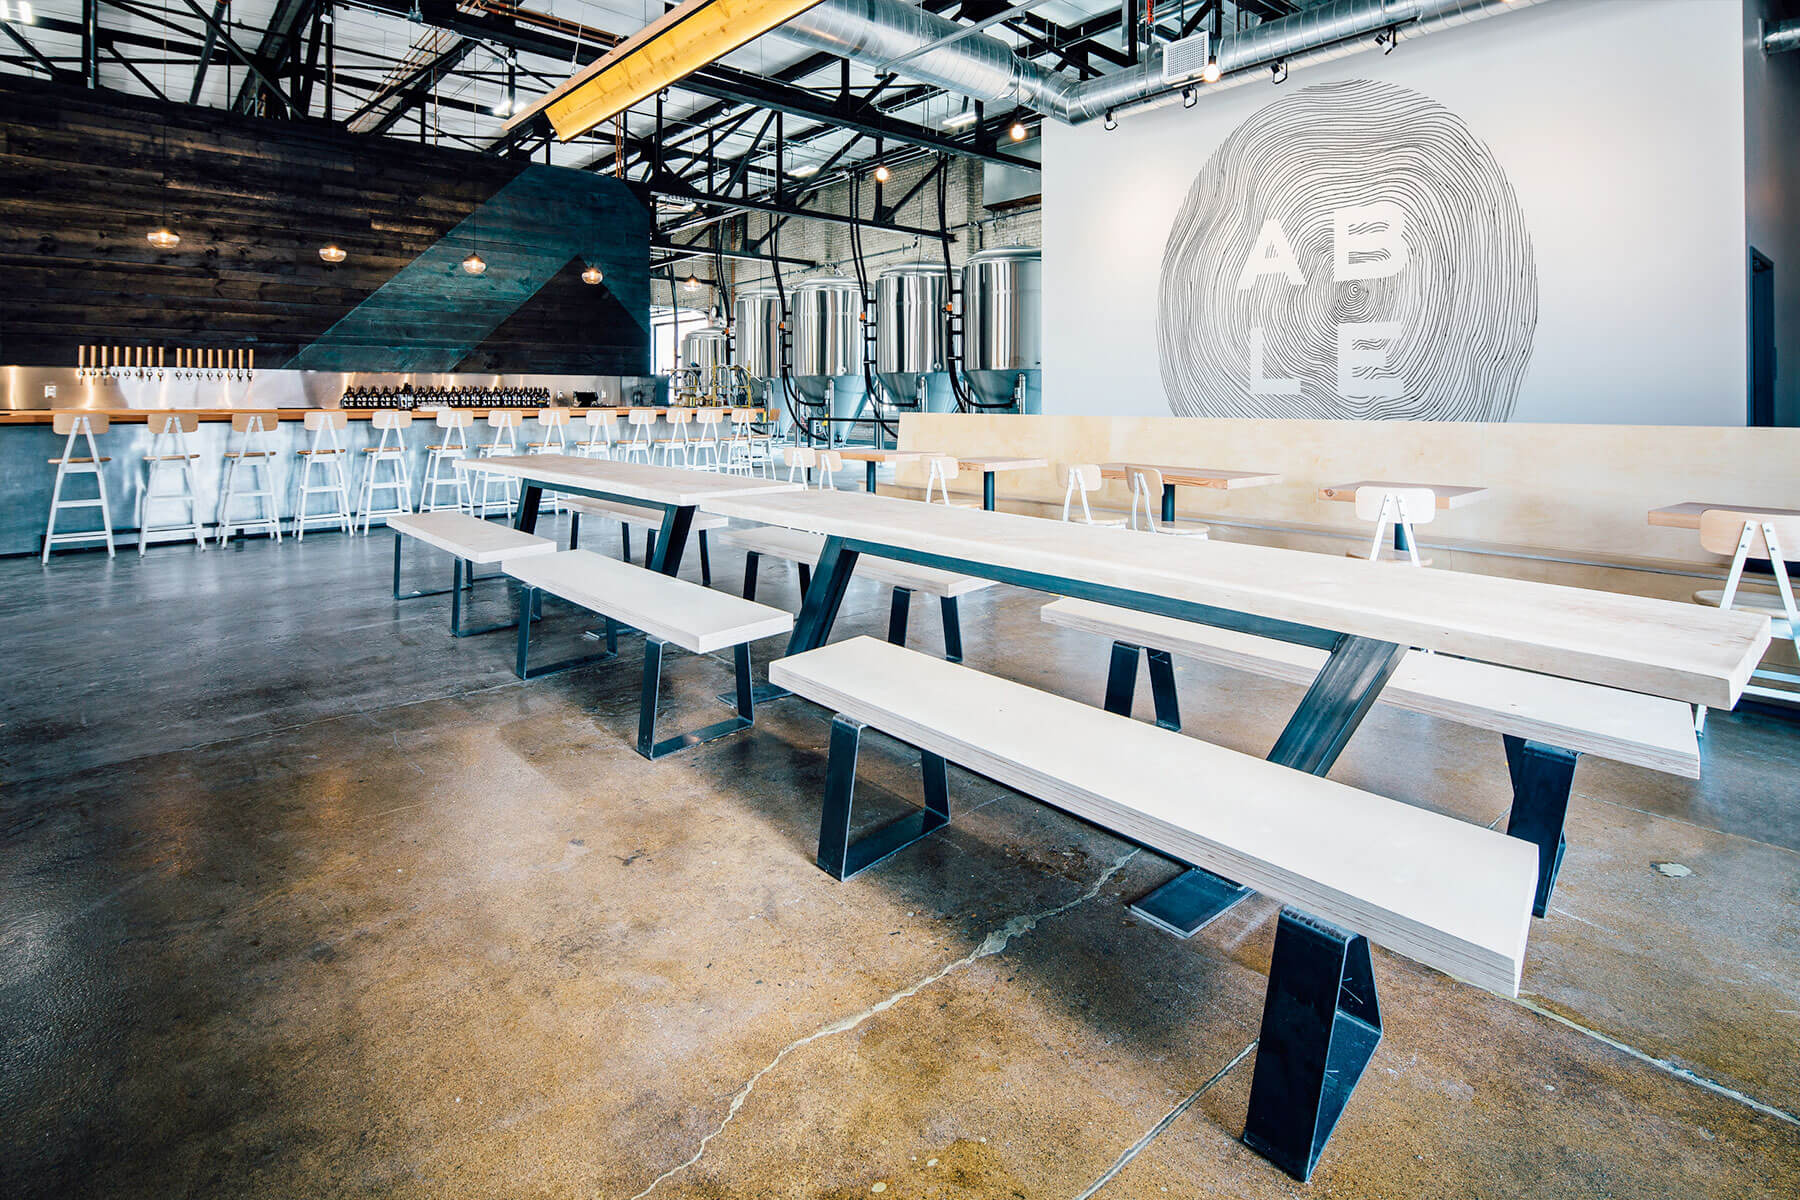 Inside the Able Seedhouse + Brewery taproom in Minneapolis, Minnesota